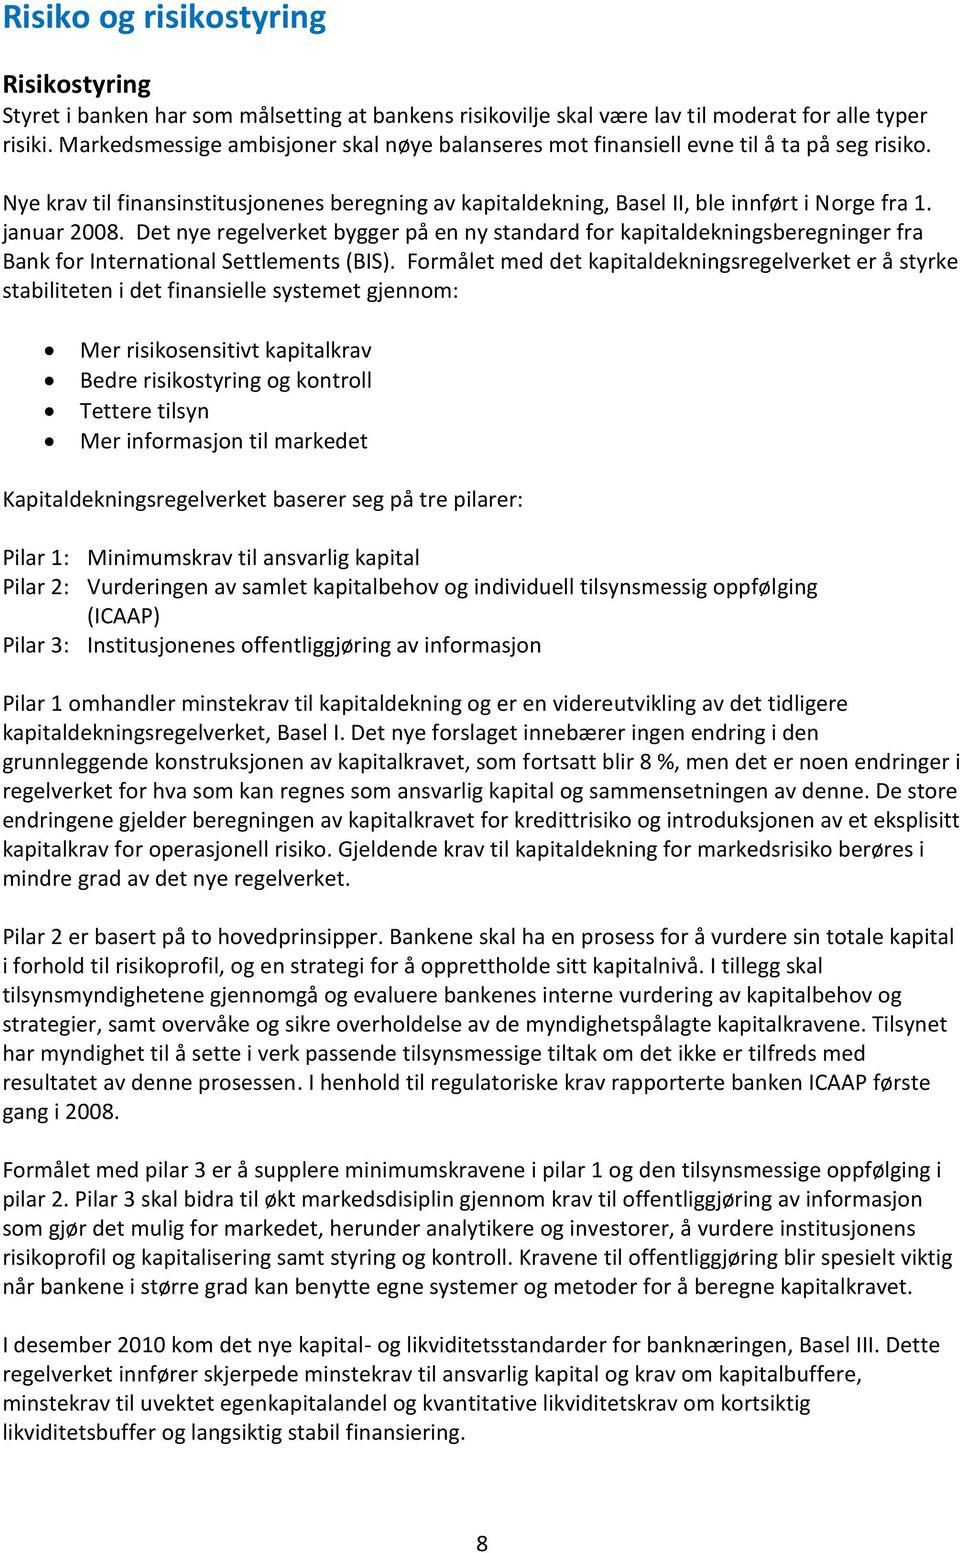 januar 2008. Det nye regelverket bygger på en ny standard for kapitaldekningsberegninger fra Bank for International Settlements (BIS).